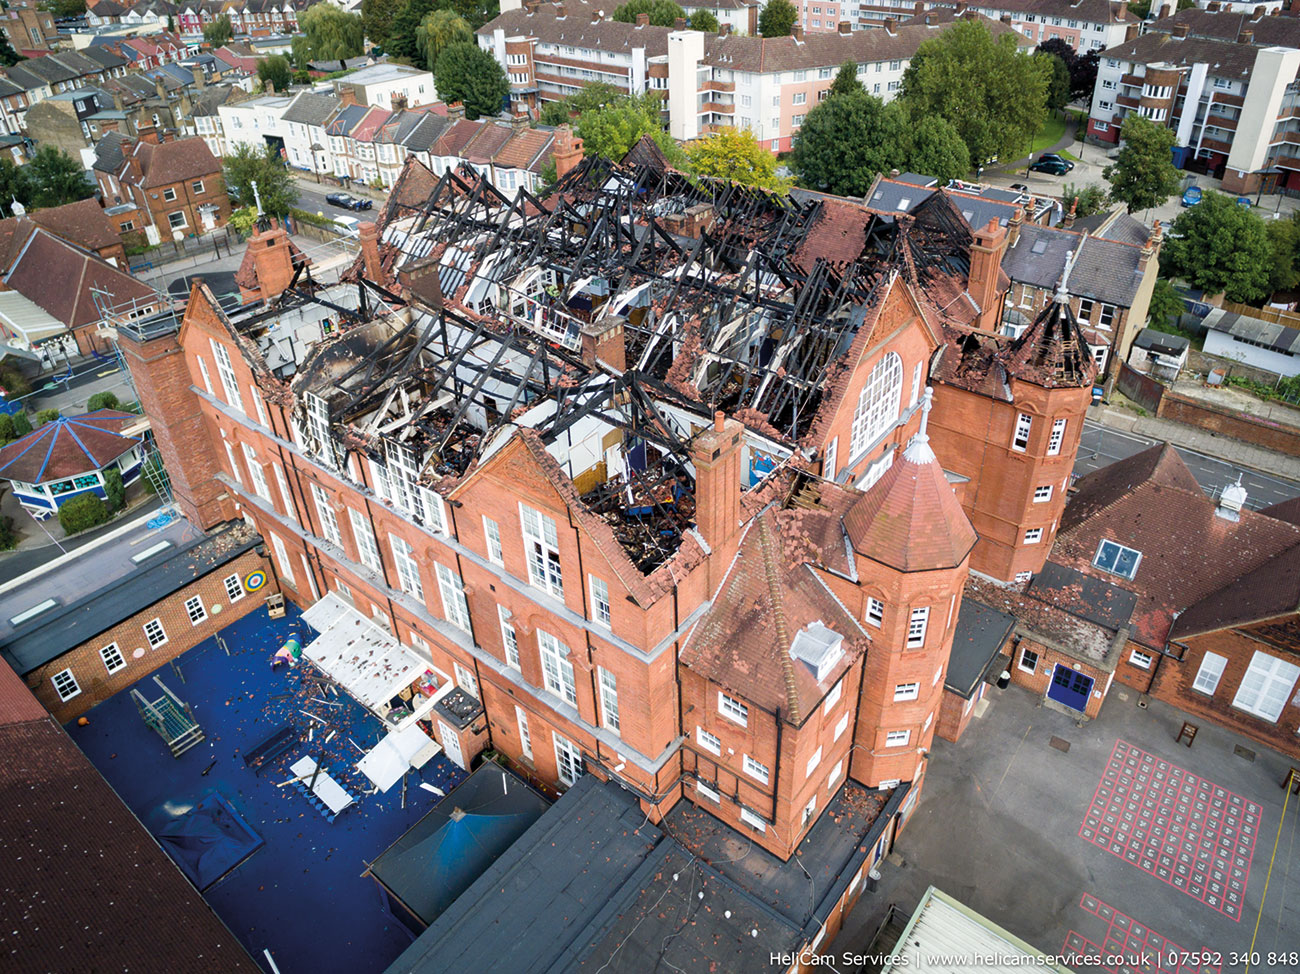 Larger fires in schools cost on average £2.8 million to repair and in some cases over £20 million.